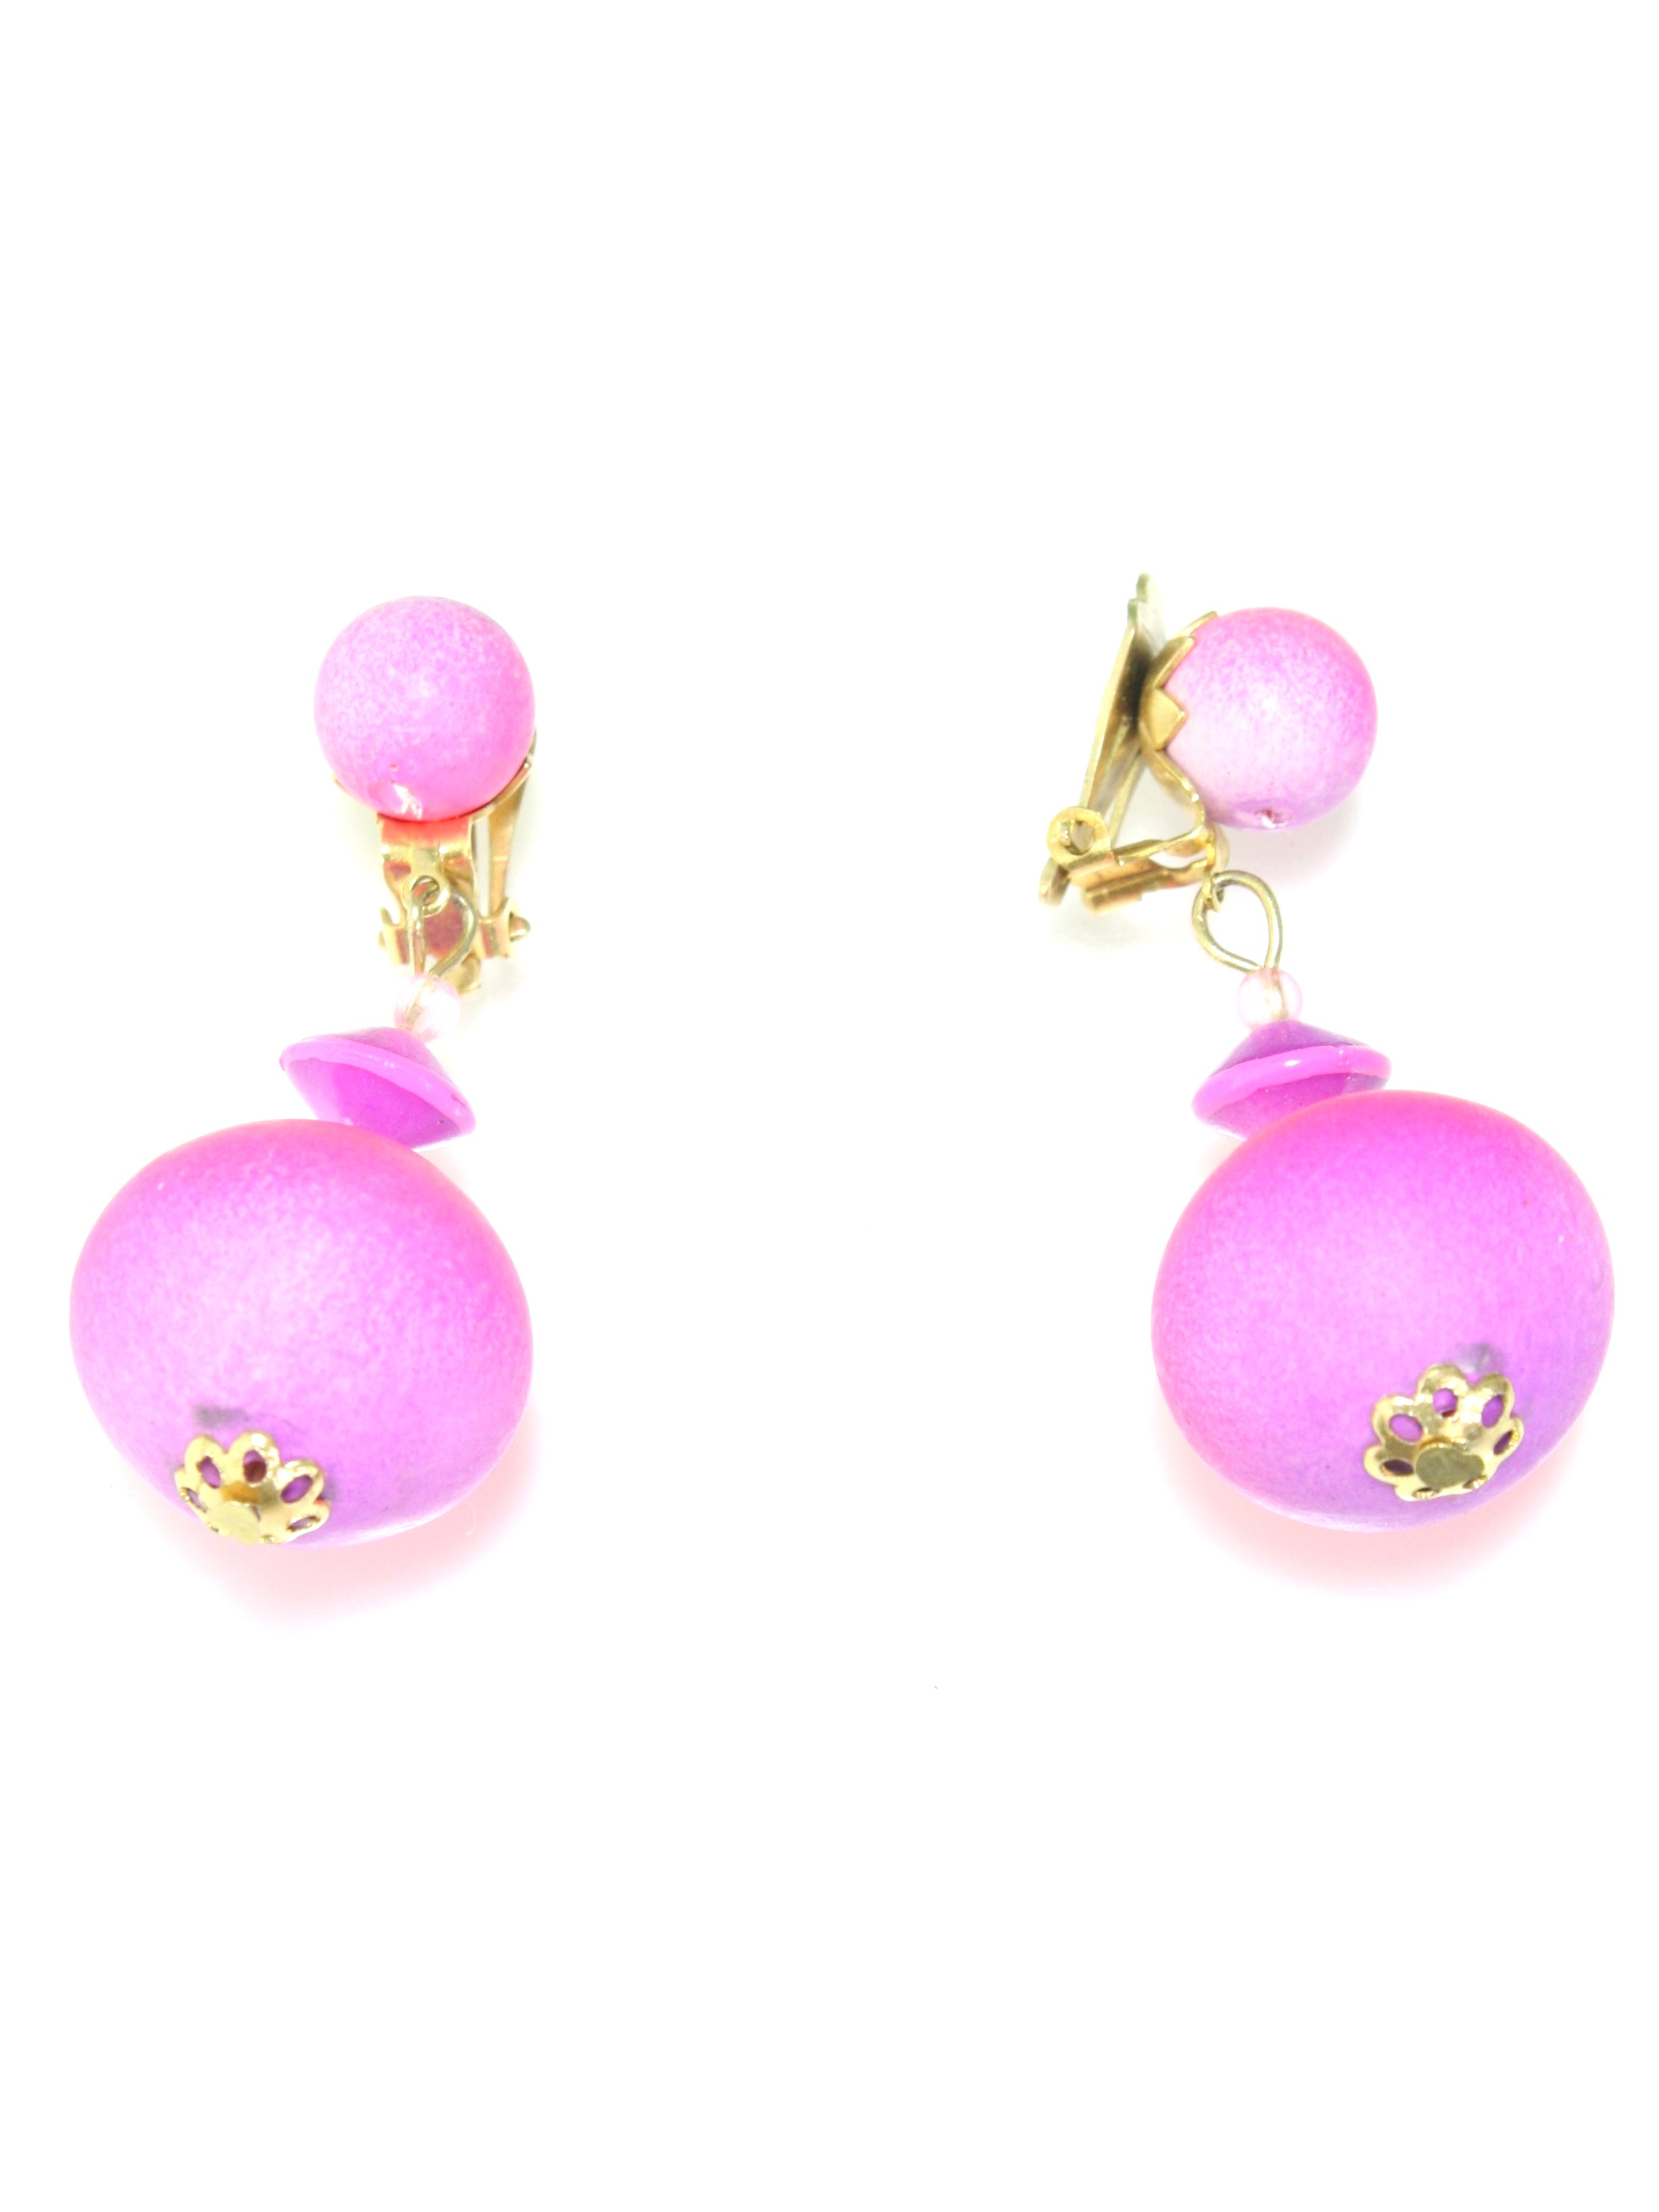 1960 S Made In Hong Kong Womens Jewelry Mod Clip On Earrings 12 00 Stock Item No 342873 N1022